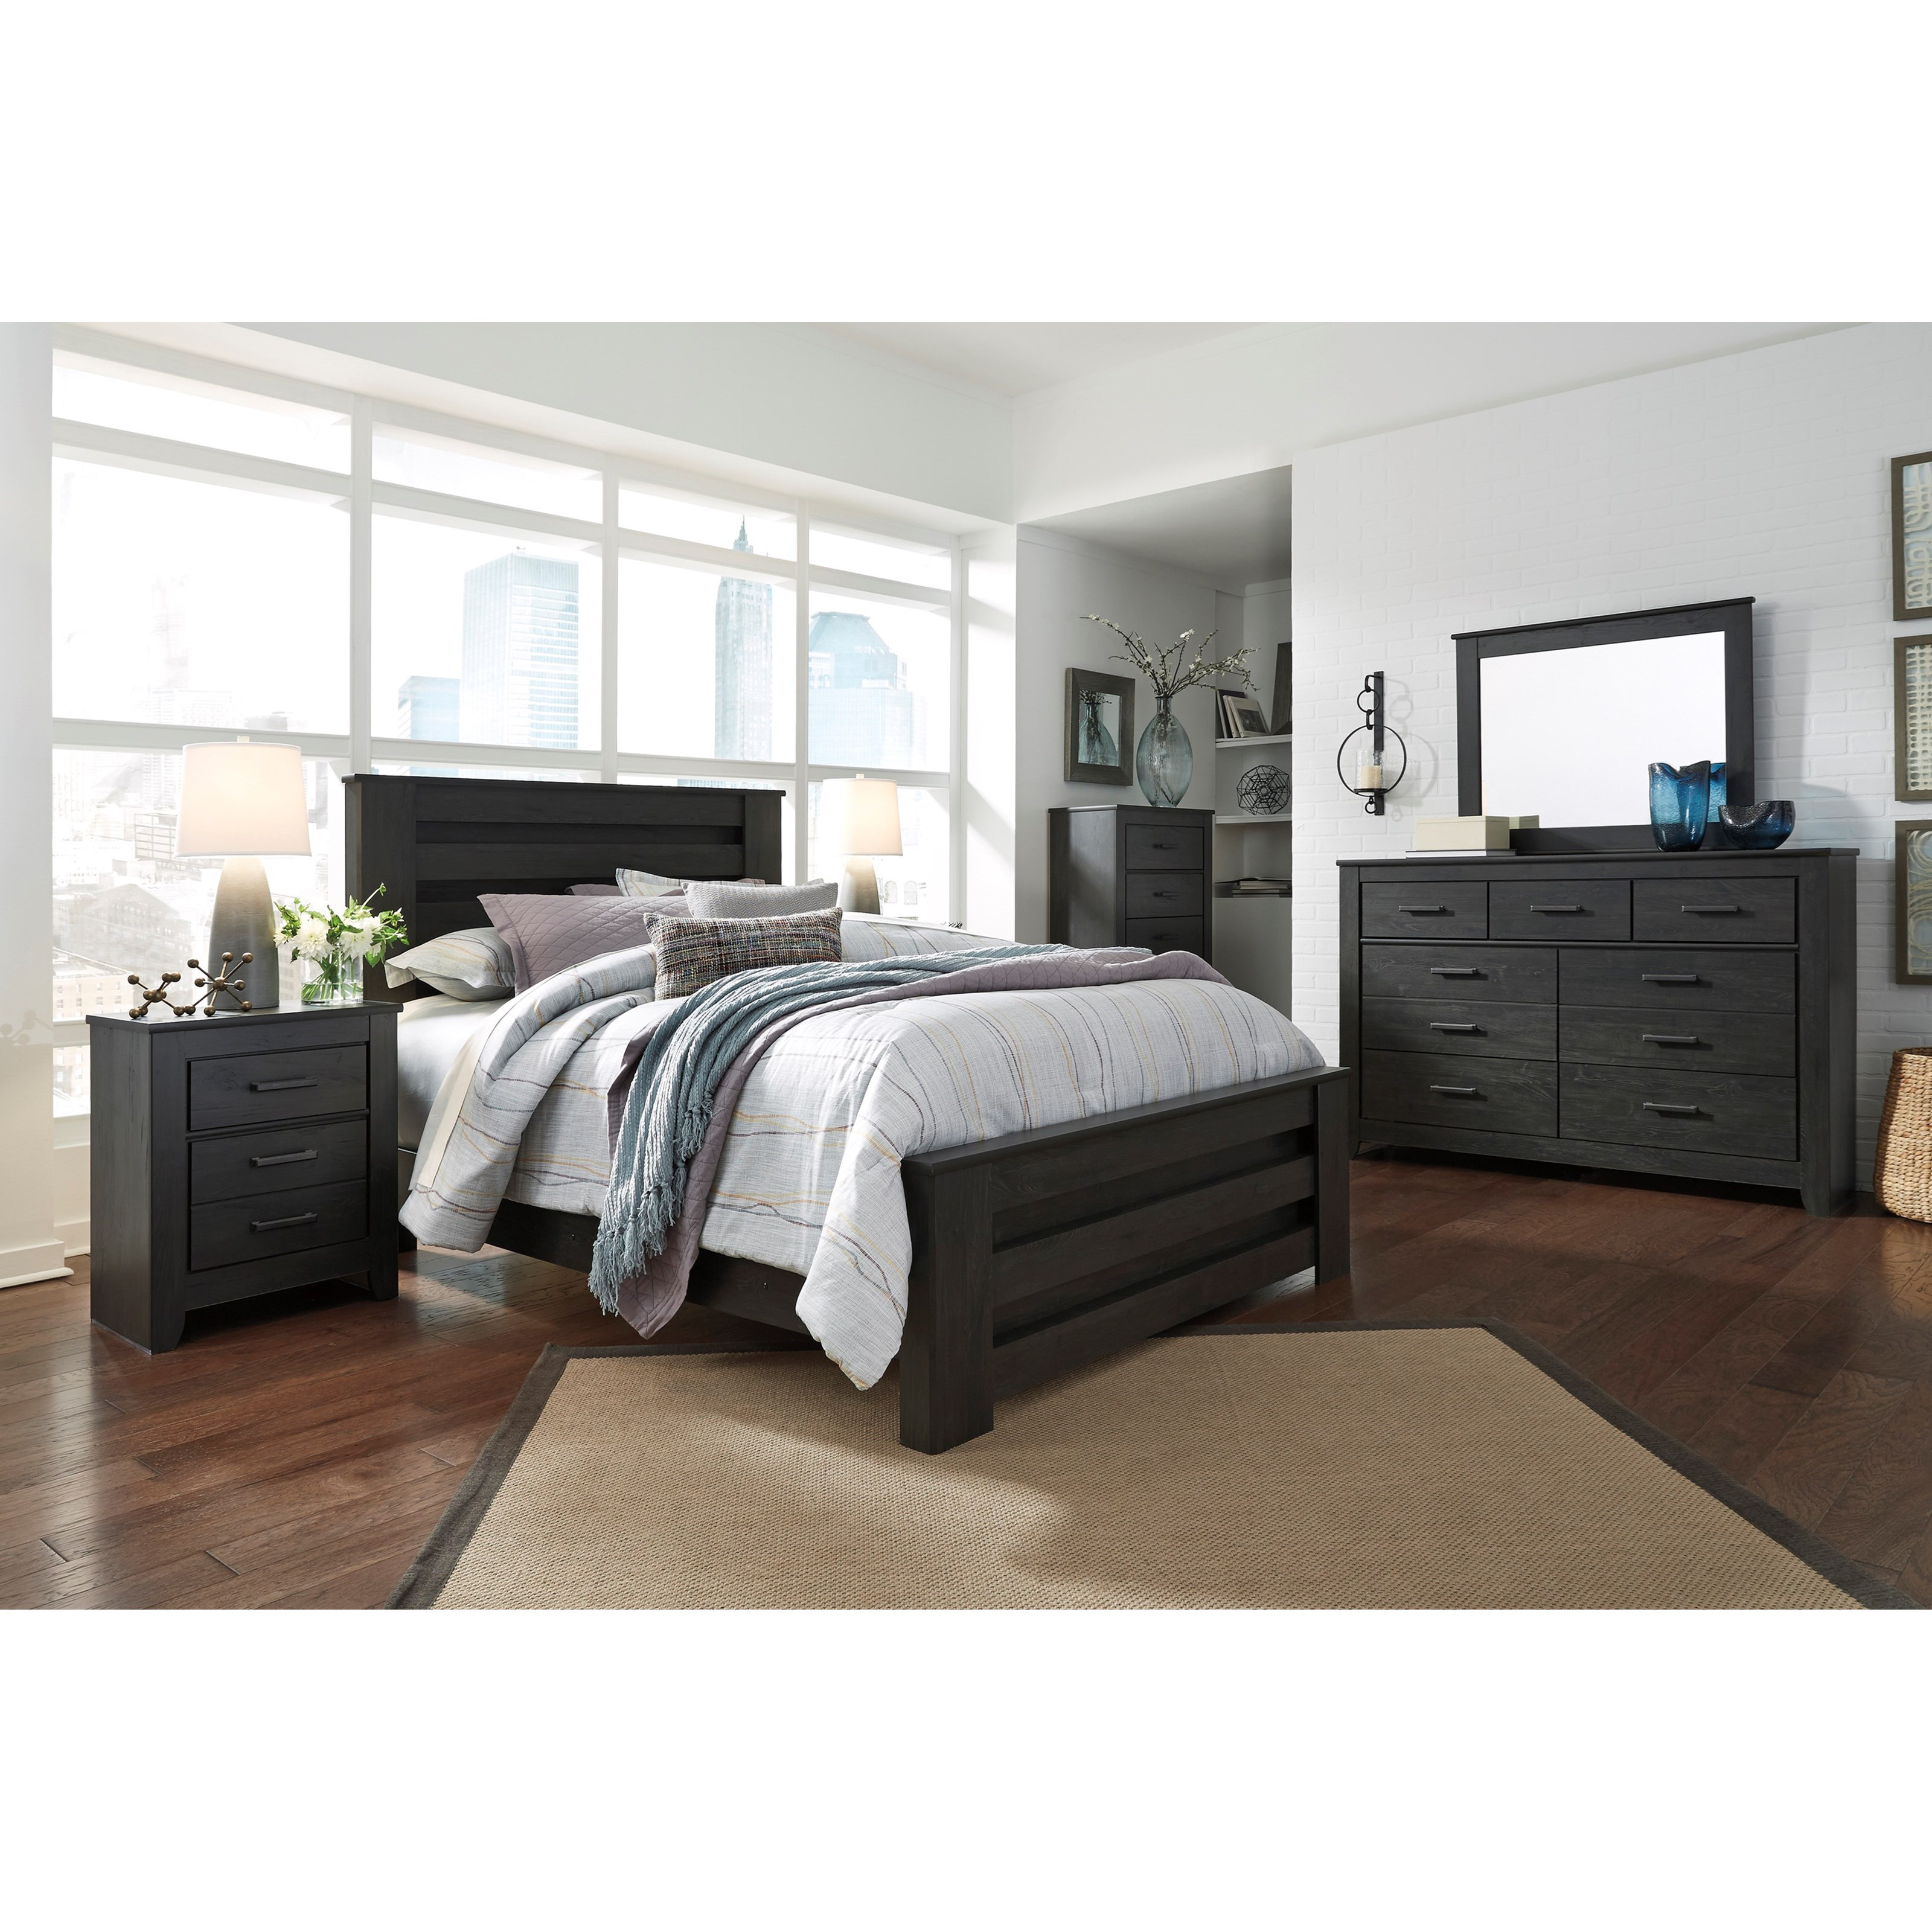 Signature design by ashley brinxton queen bedroom group for Bedroom furniture groups